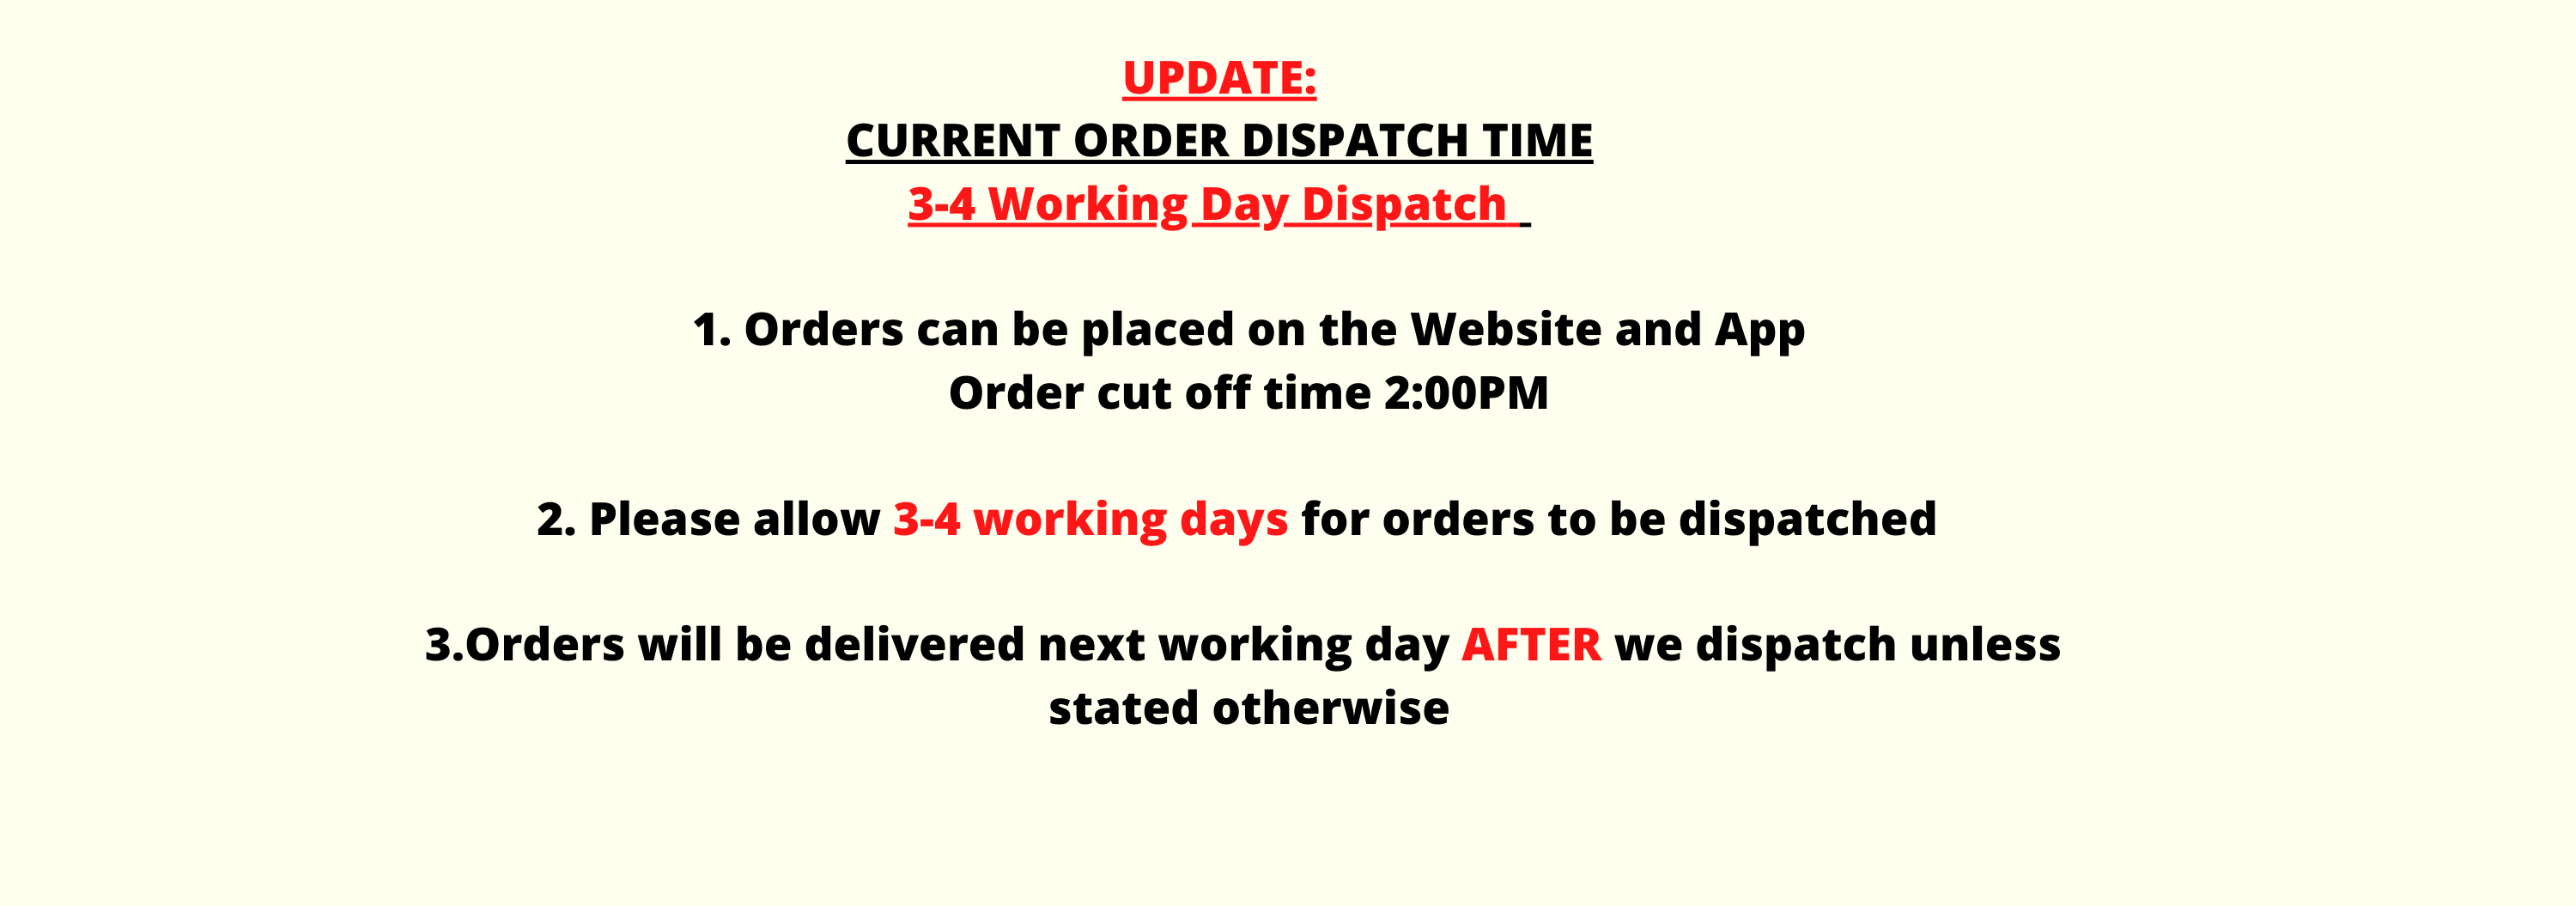 Dispatch time